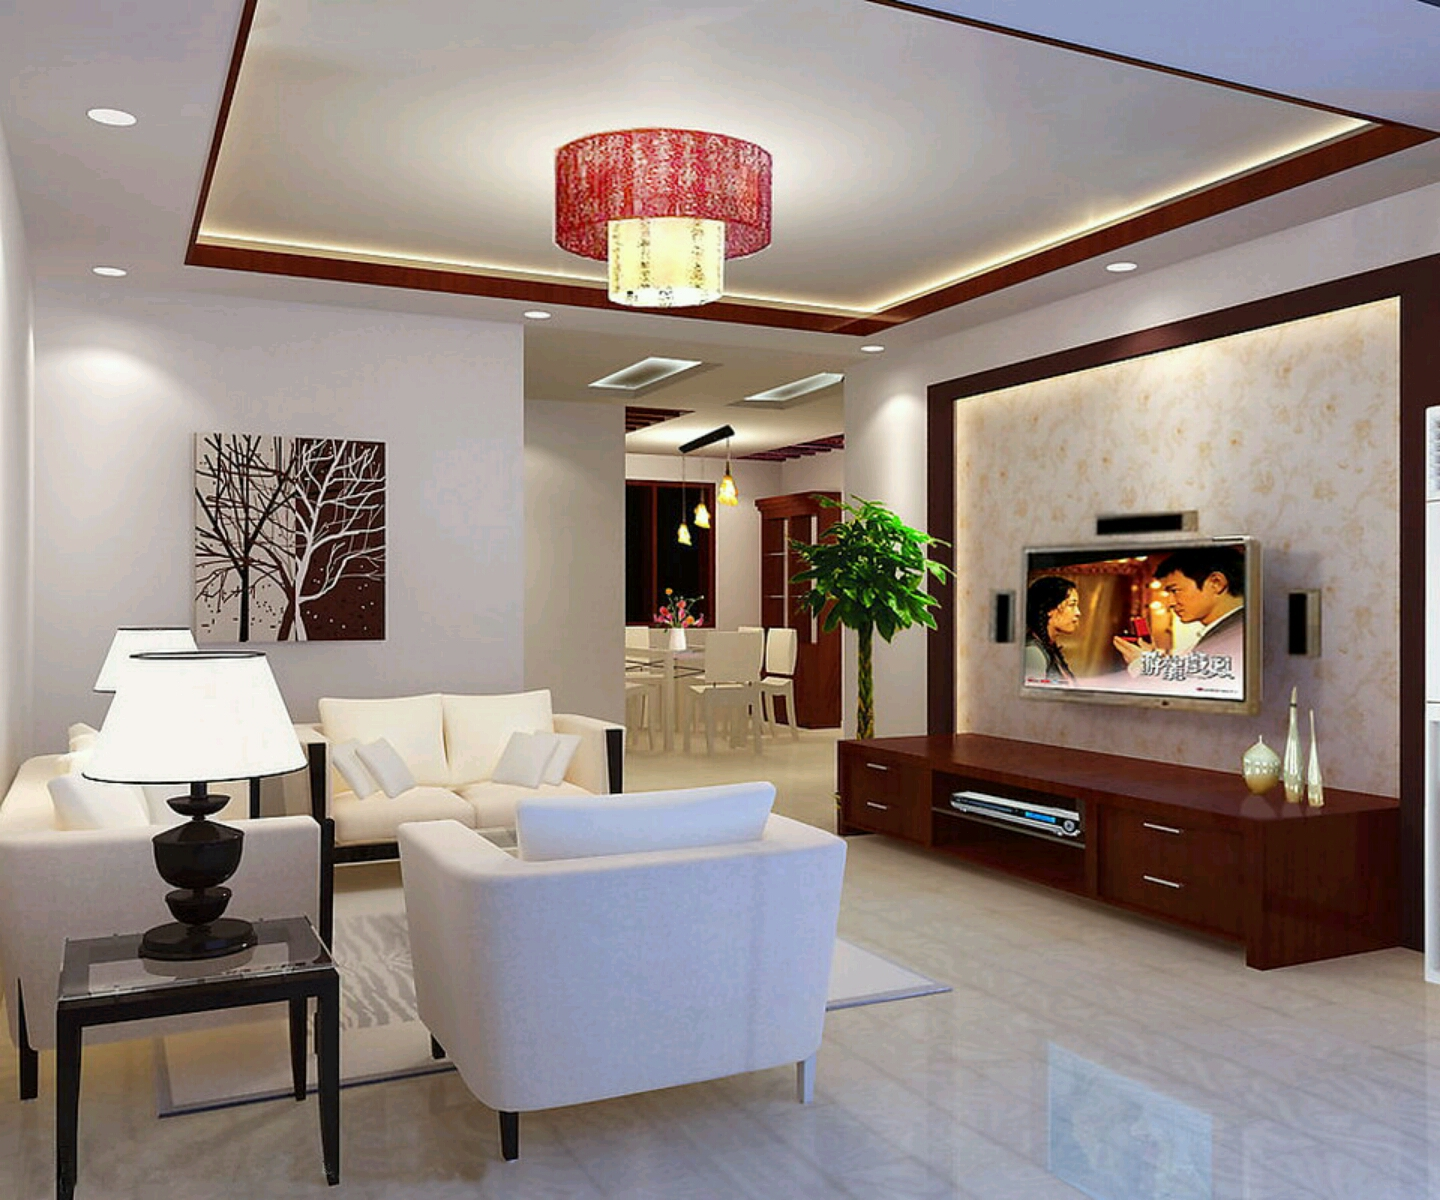 Best interior design house for New room interior design